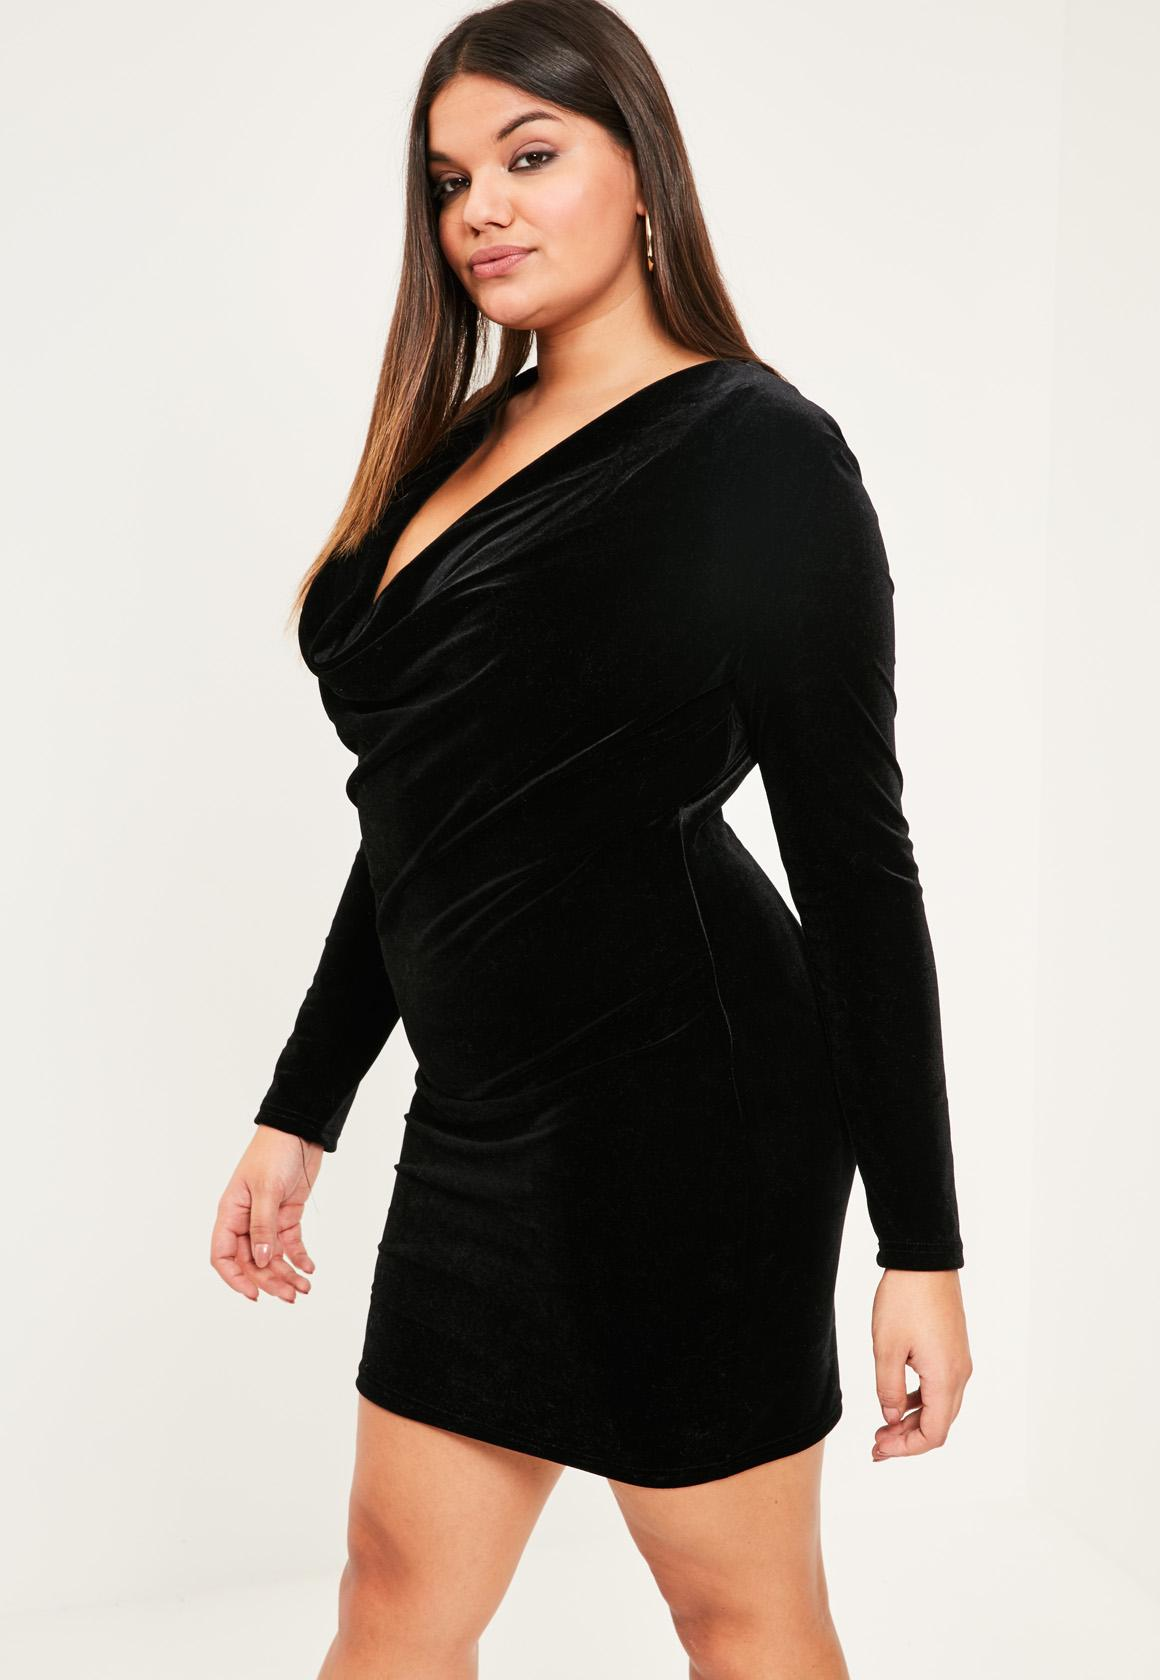 Plus Size Black Velvet Cowl Neck Dress | Missguided